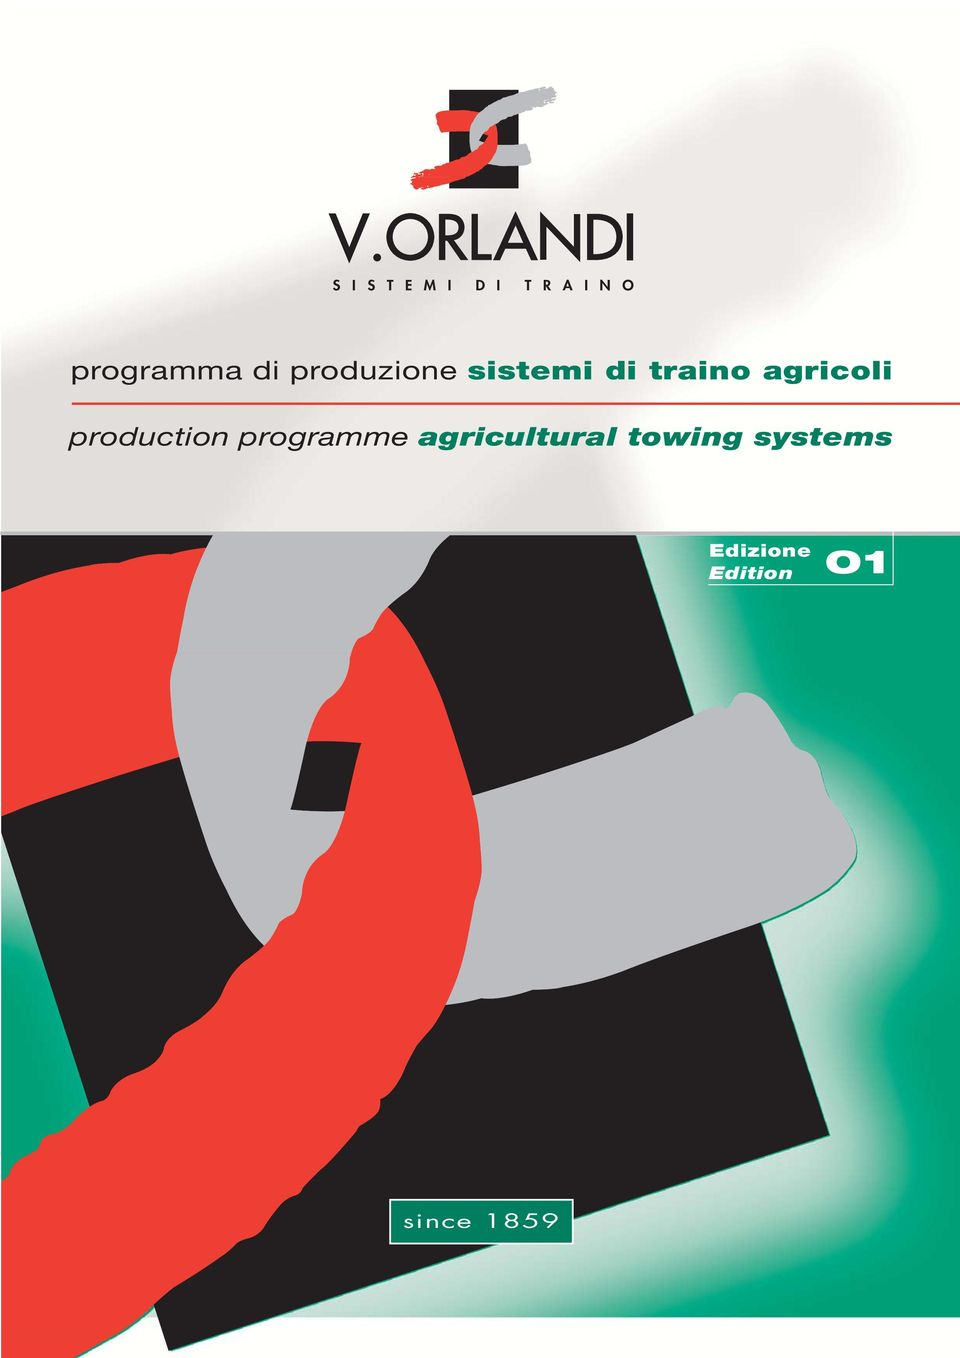 agricoli production programme